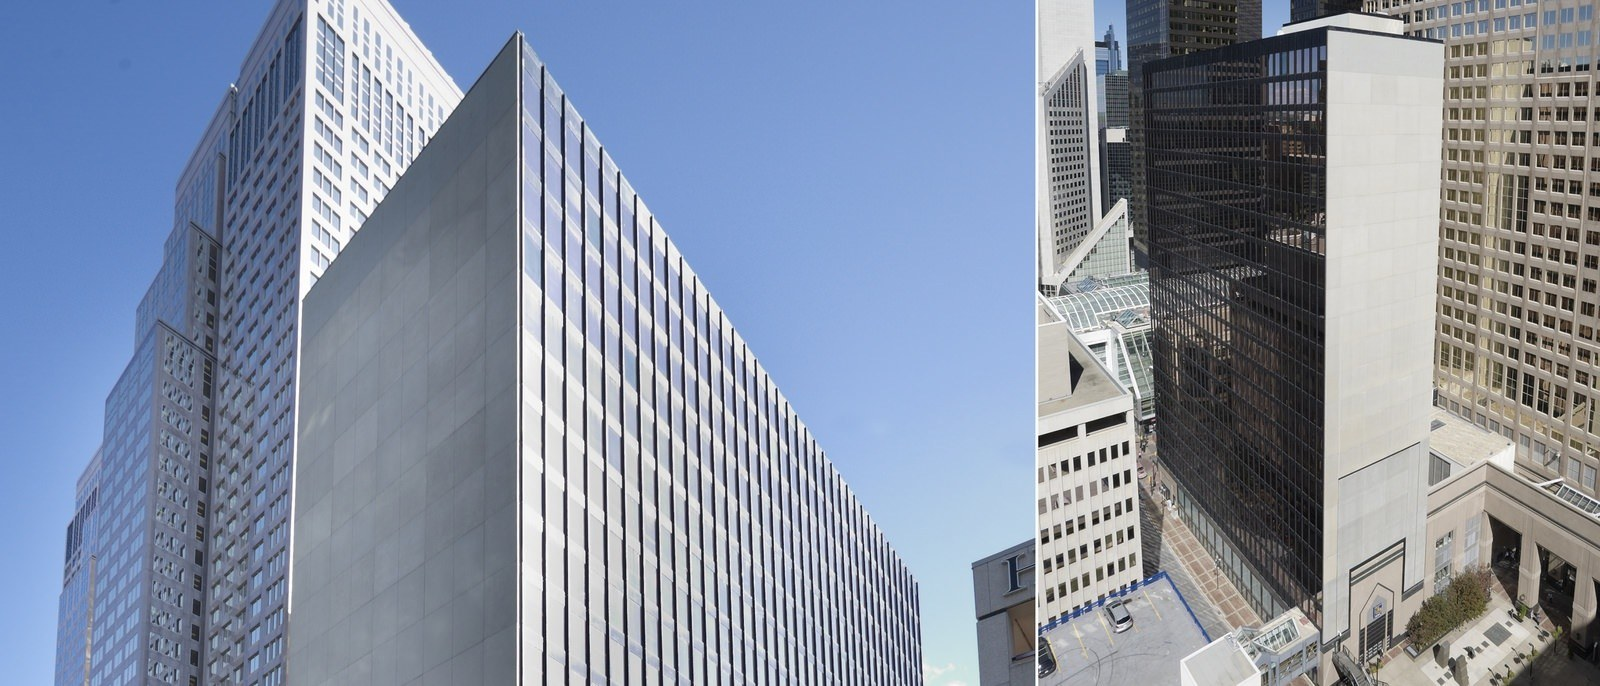 A narrow glass building that is built in the middle of a downtown area near other buidings.